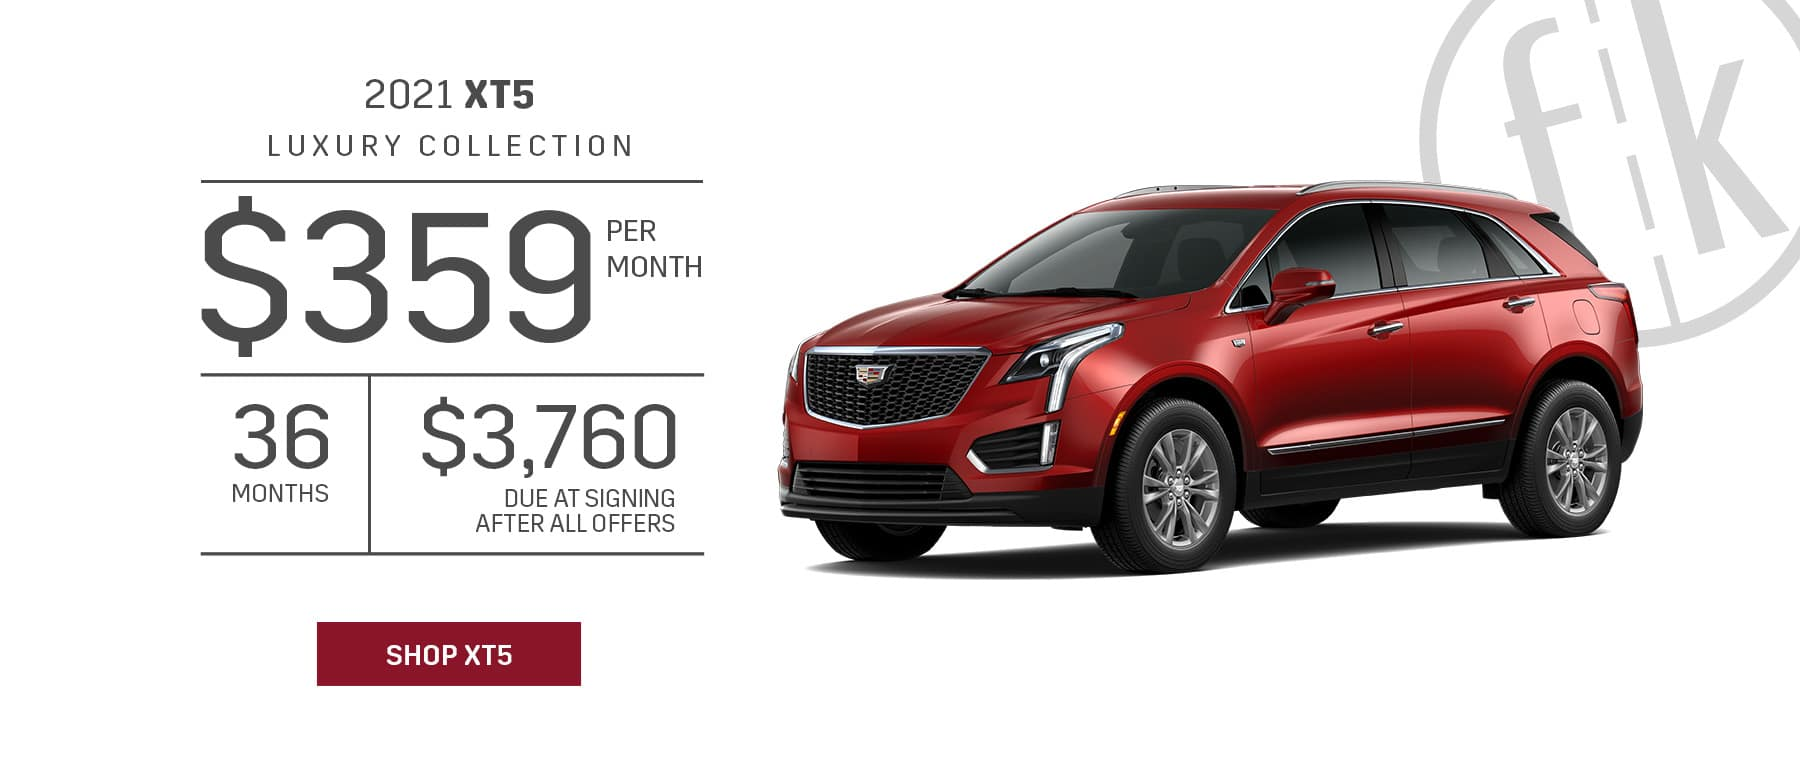 2021 XT5 0.9% for 72 mos. PLUS $2,000 Purchase Allowance OR $2,500 Competitive Cash Allowance